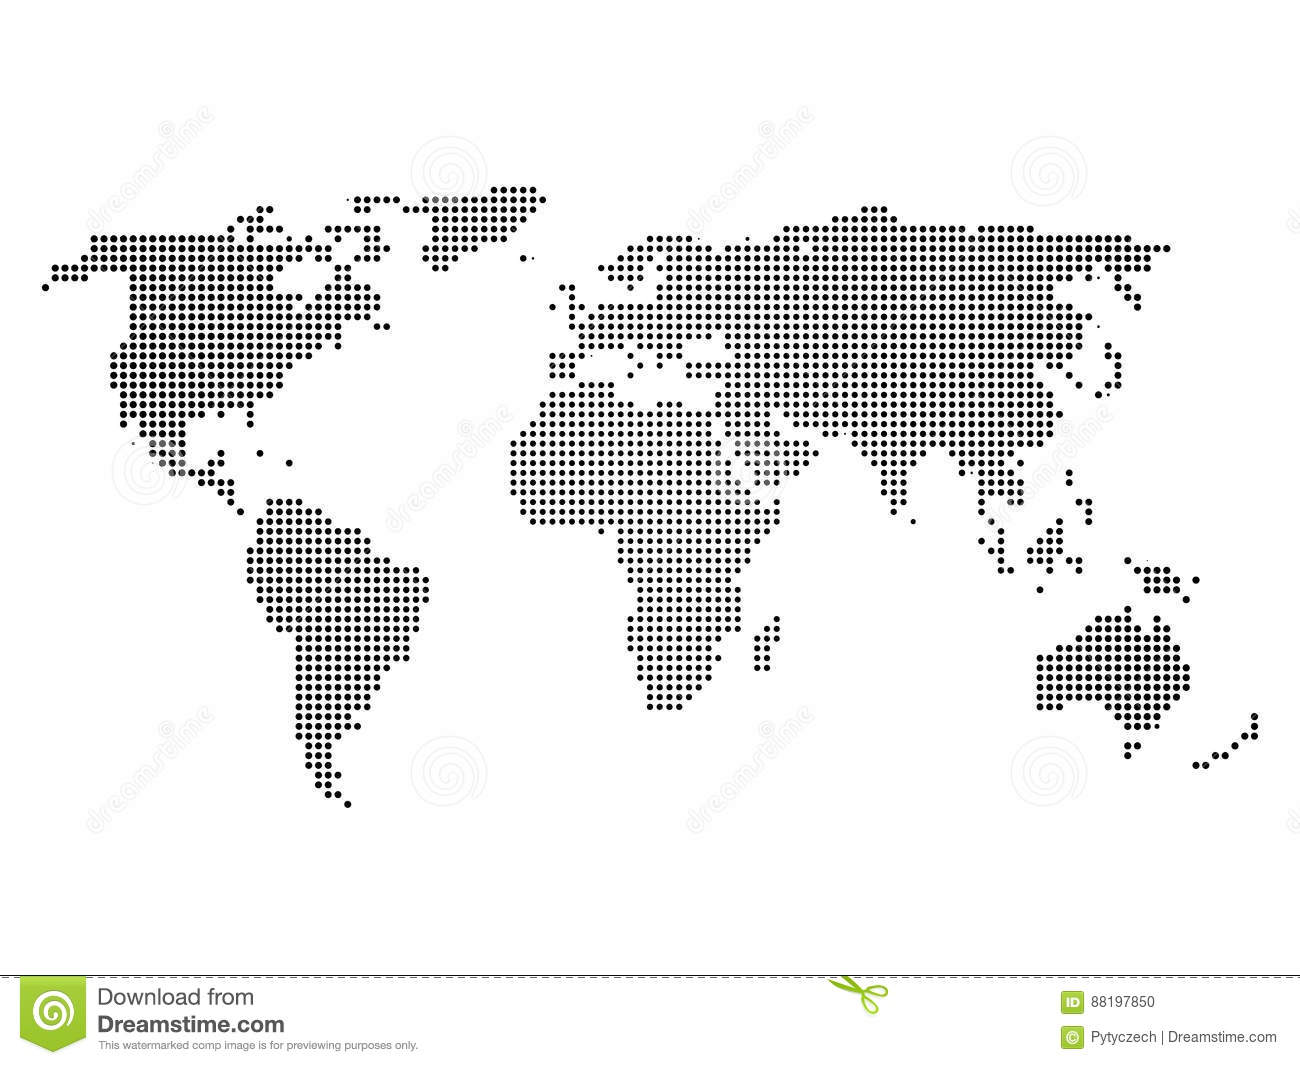 Download Black Halftone World Map Of Small Dots In Linear Arrangement Simple Flat Vector Illustration